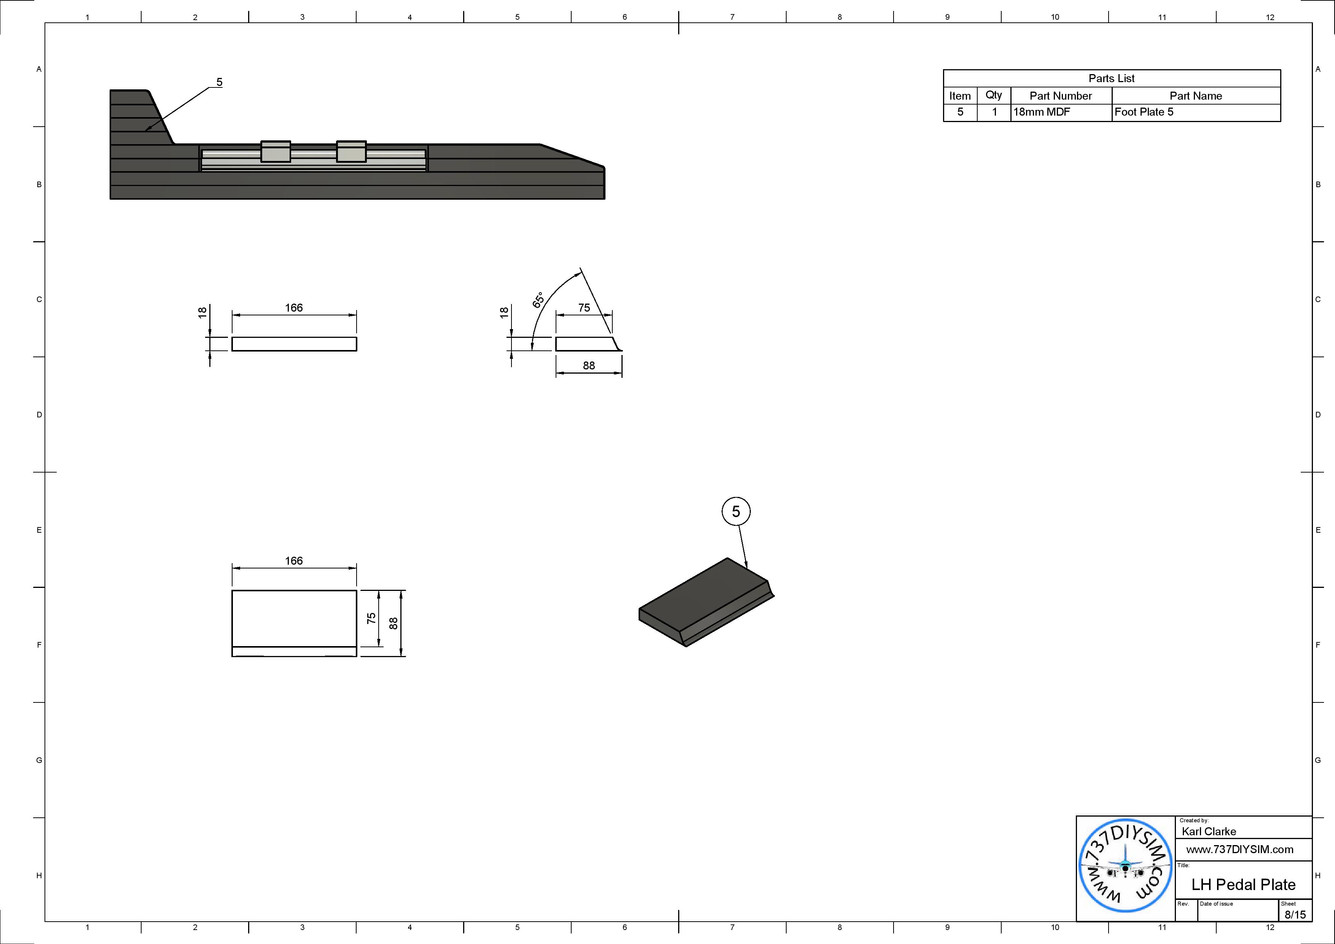 LH Pedal Plate Drawing v1-page-008.jpg